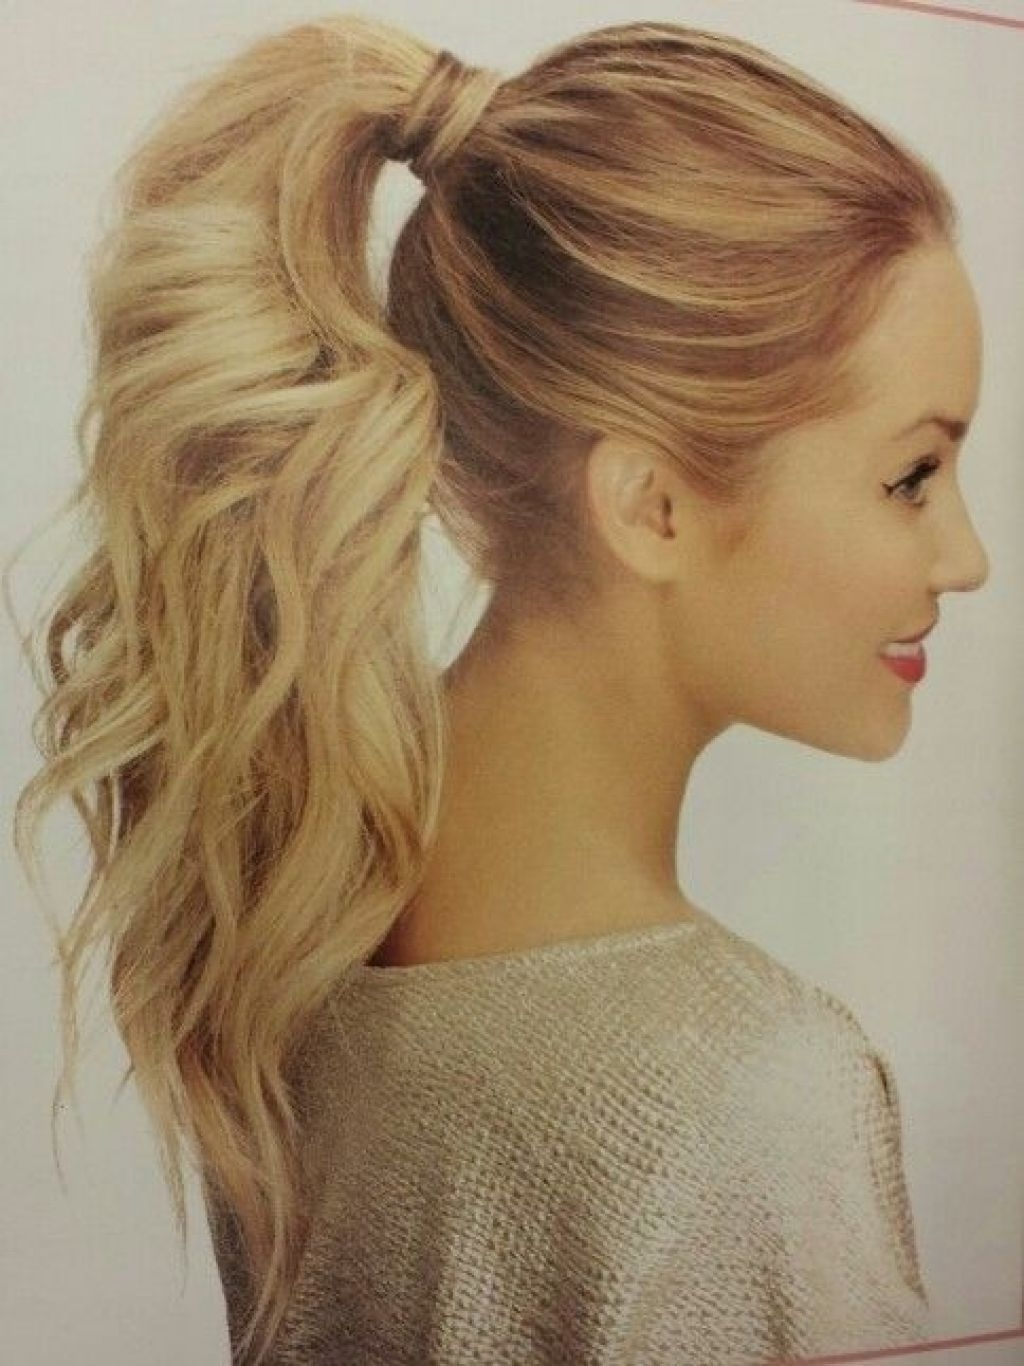 Widely Used Full And Fluffy Blonde Ponytail Hairstyles Pertaining To Blonde Short Synthetic Ponytail Clip In Pony Tail Hair Extensions (View 3 of 20)